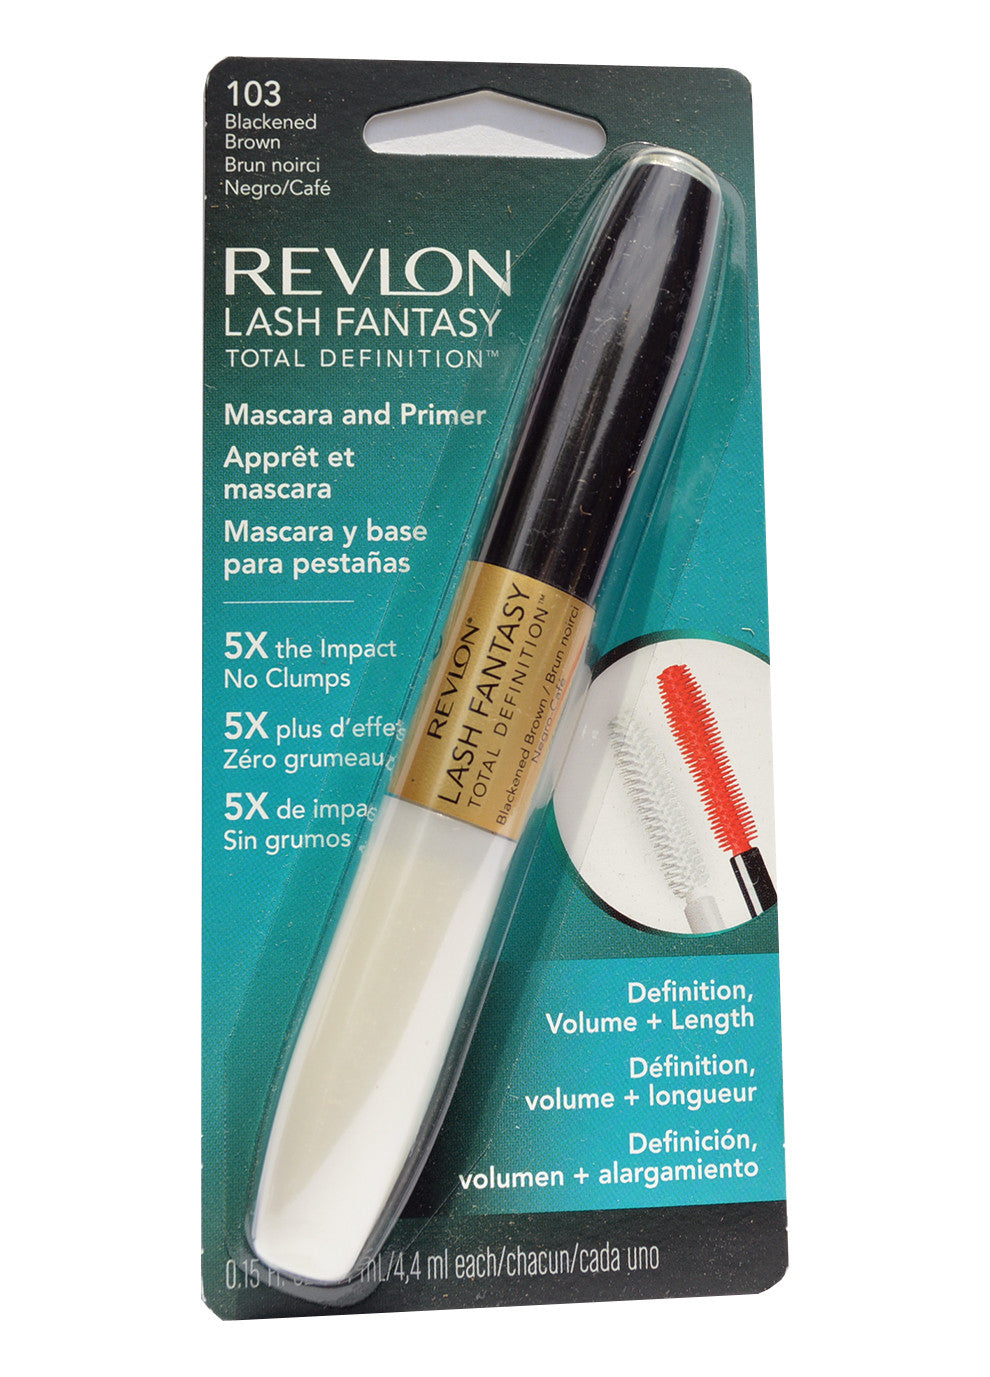 Revlon LASH FANTASY TOTAL DEFINITION Mascara and Primer #103 Blackened Brown